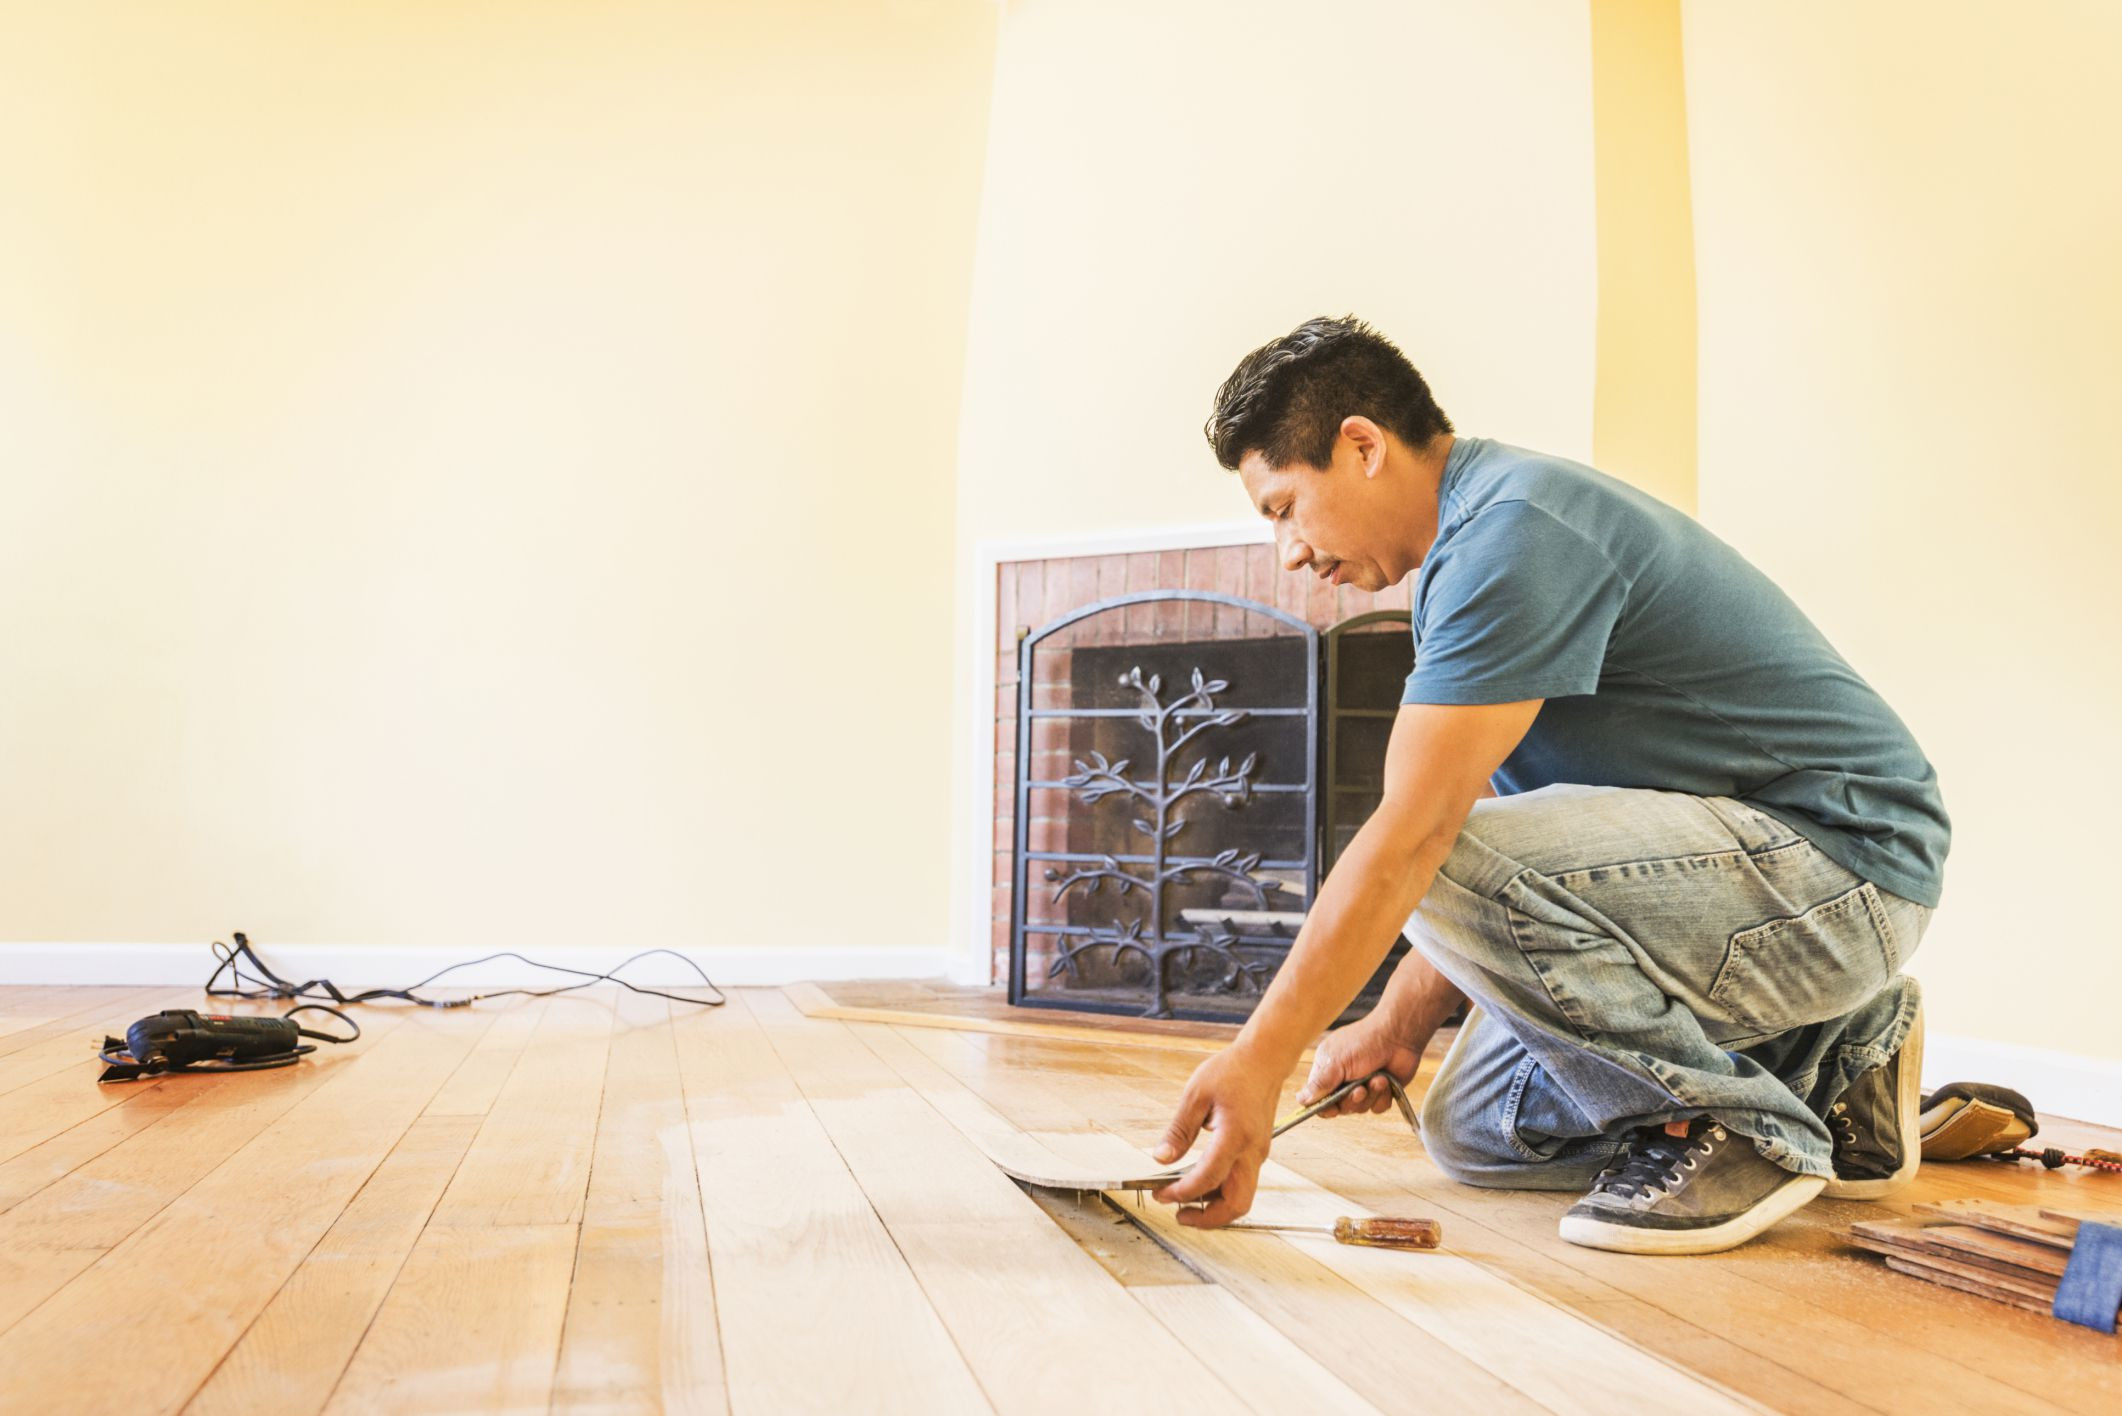 3 4 cherry hardwood flooring of solid hardwood flooring costs for professional vs diy pertaining to installwoodflooring 592016327 56684d6f3df78ce1610a598a